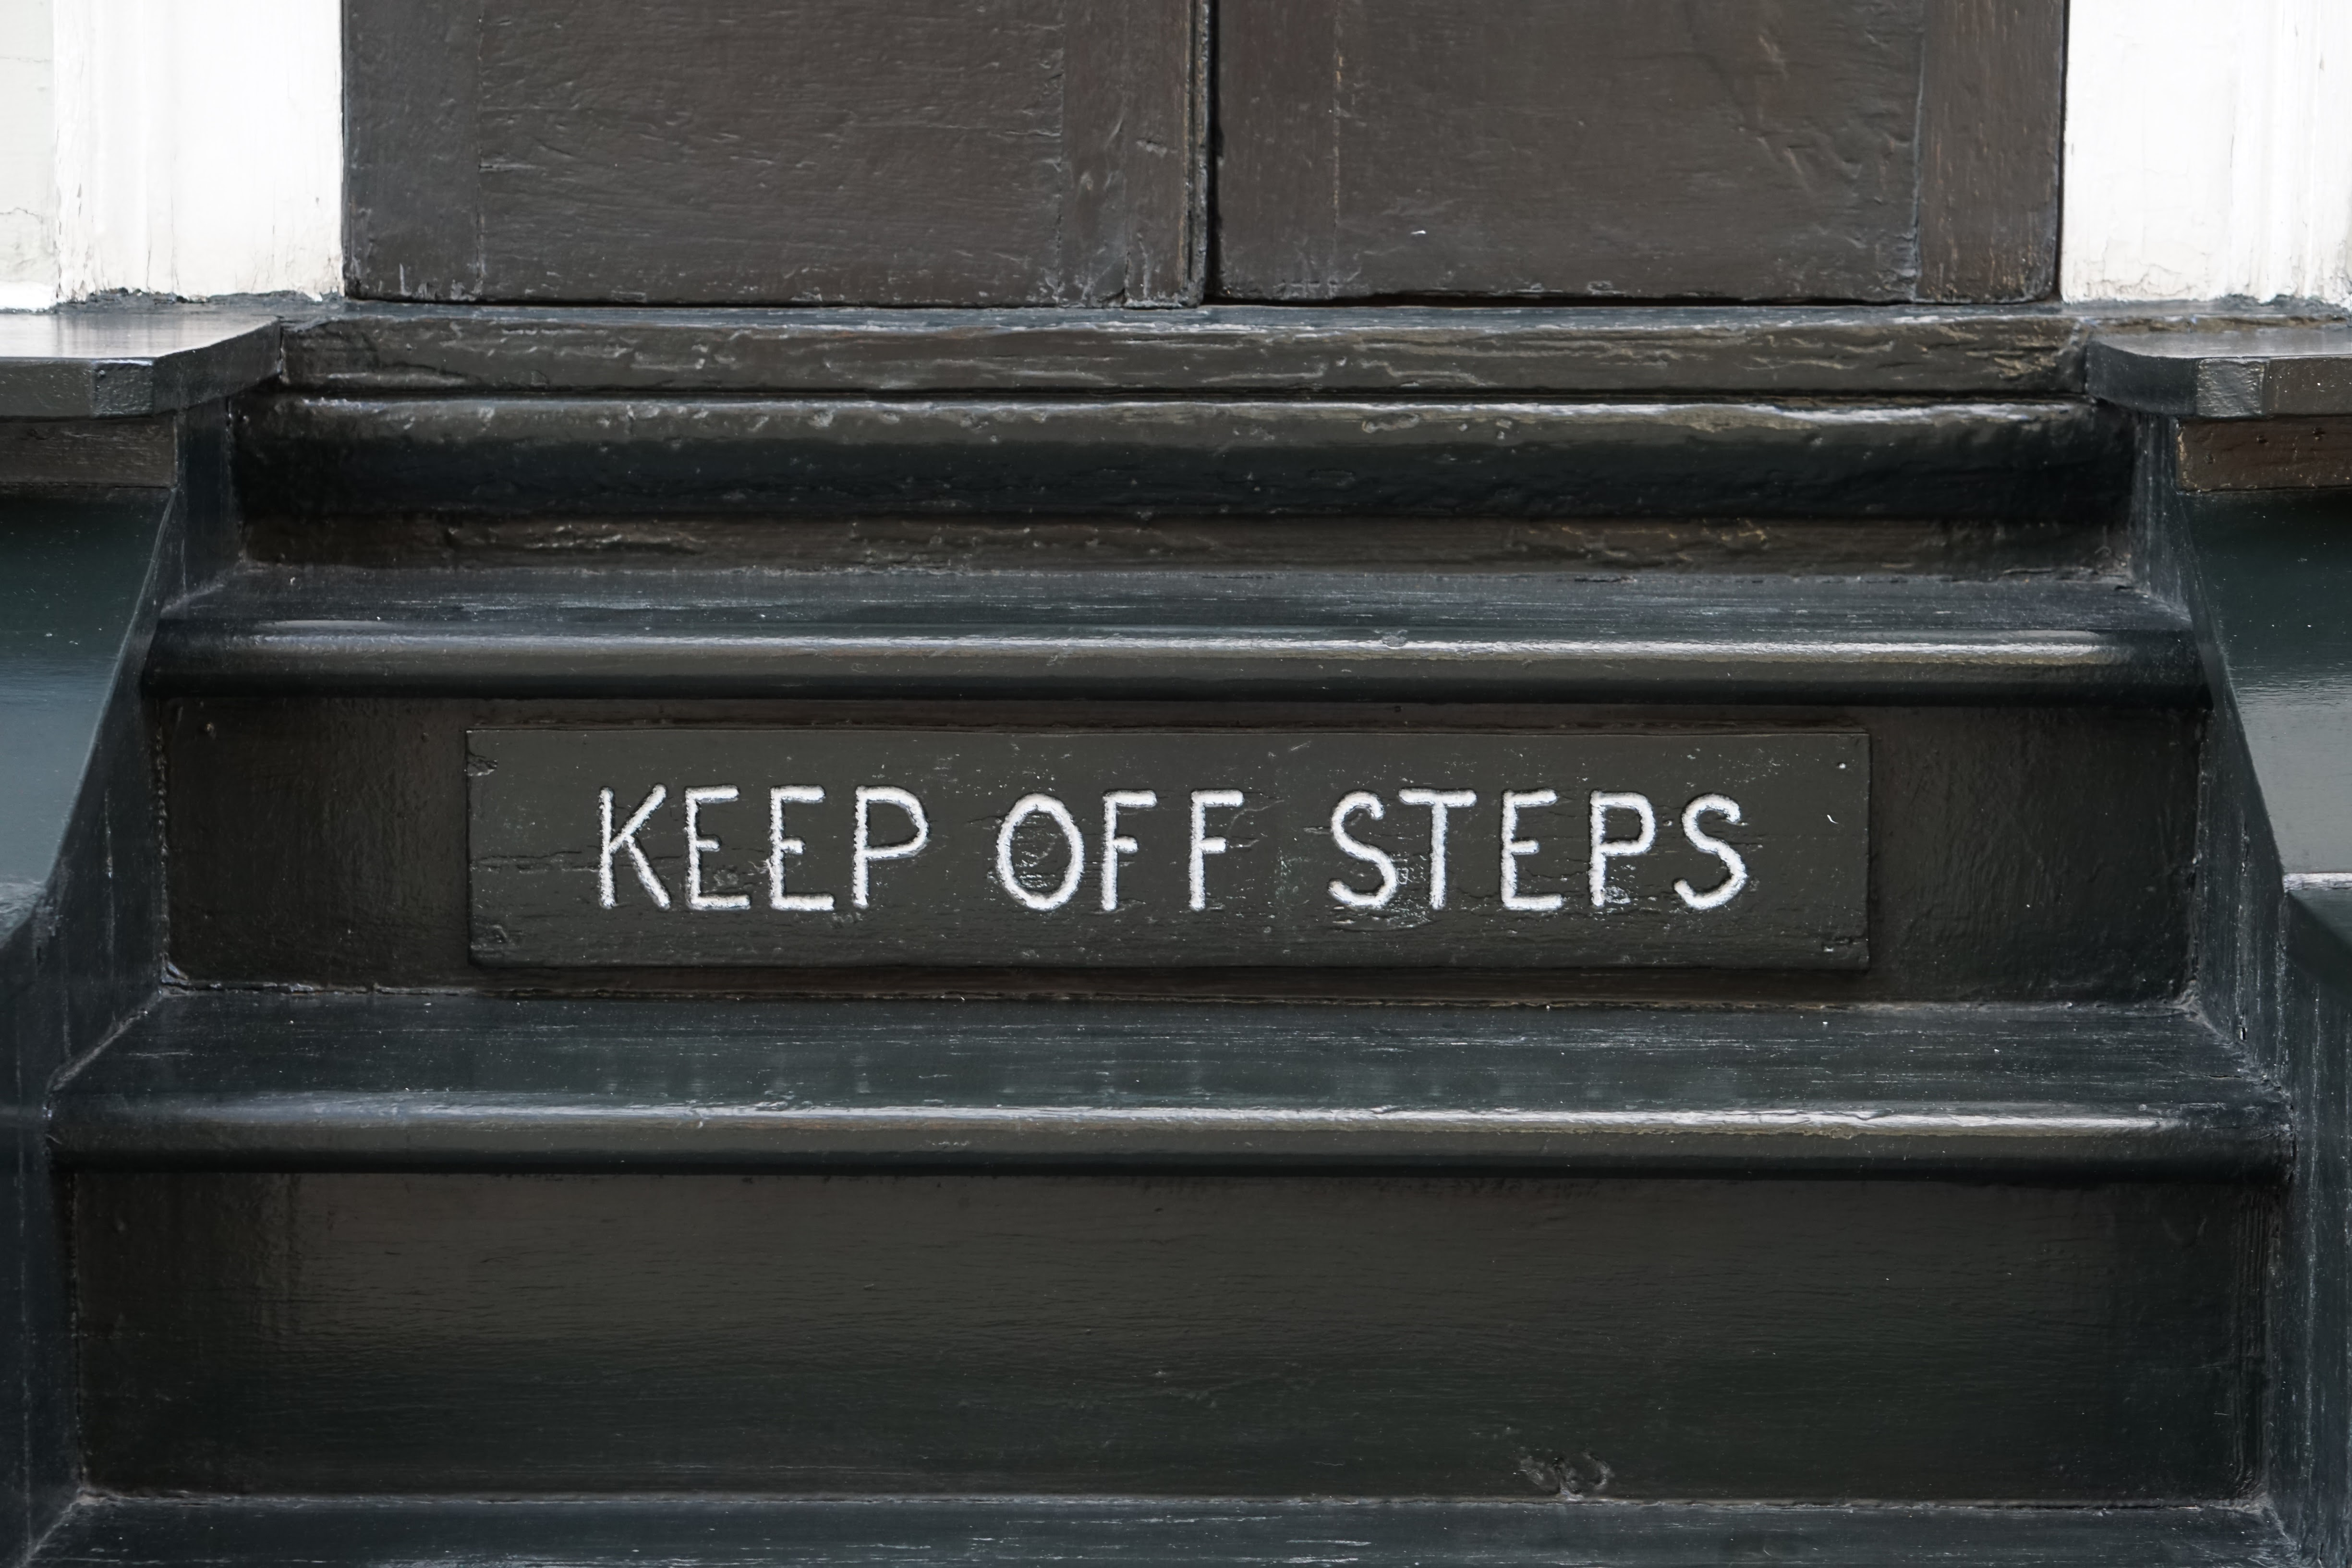 Keep Off Steps, Stairs, Warning, Steps, Orleans, HQ Photo